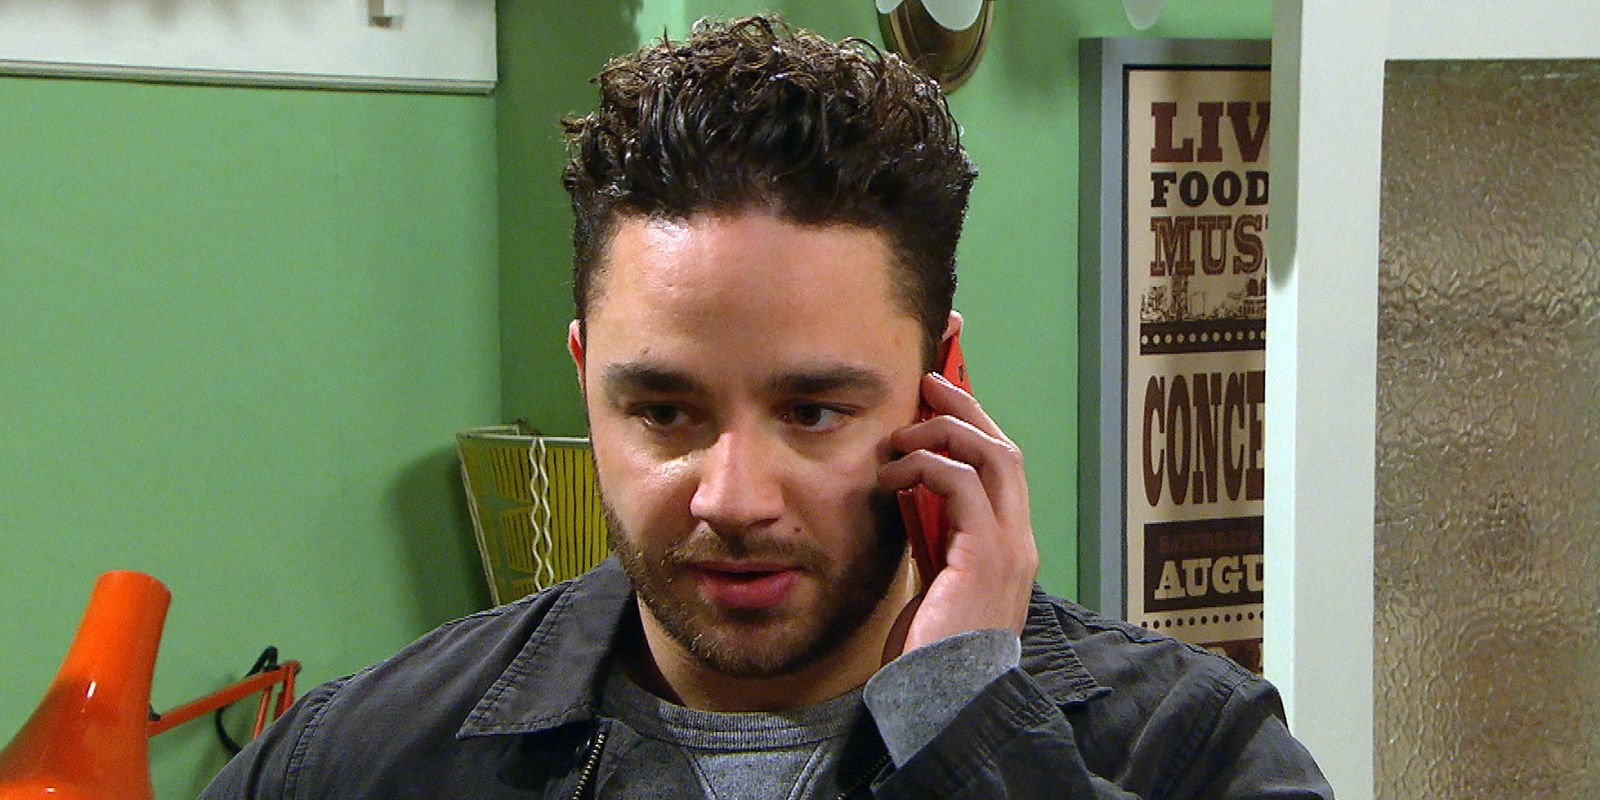 Where are Emmerdale's missing Bartons now? Here's what happened next for Adam Thomas, Sophie Powles and more